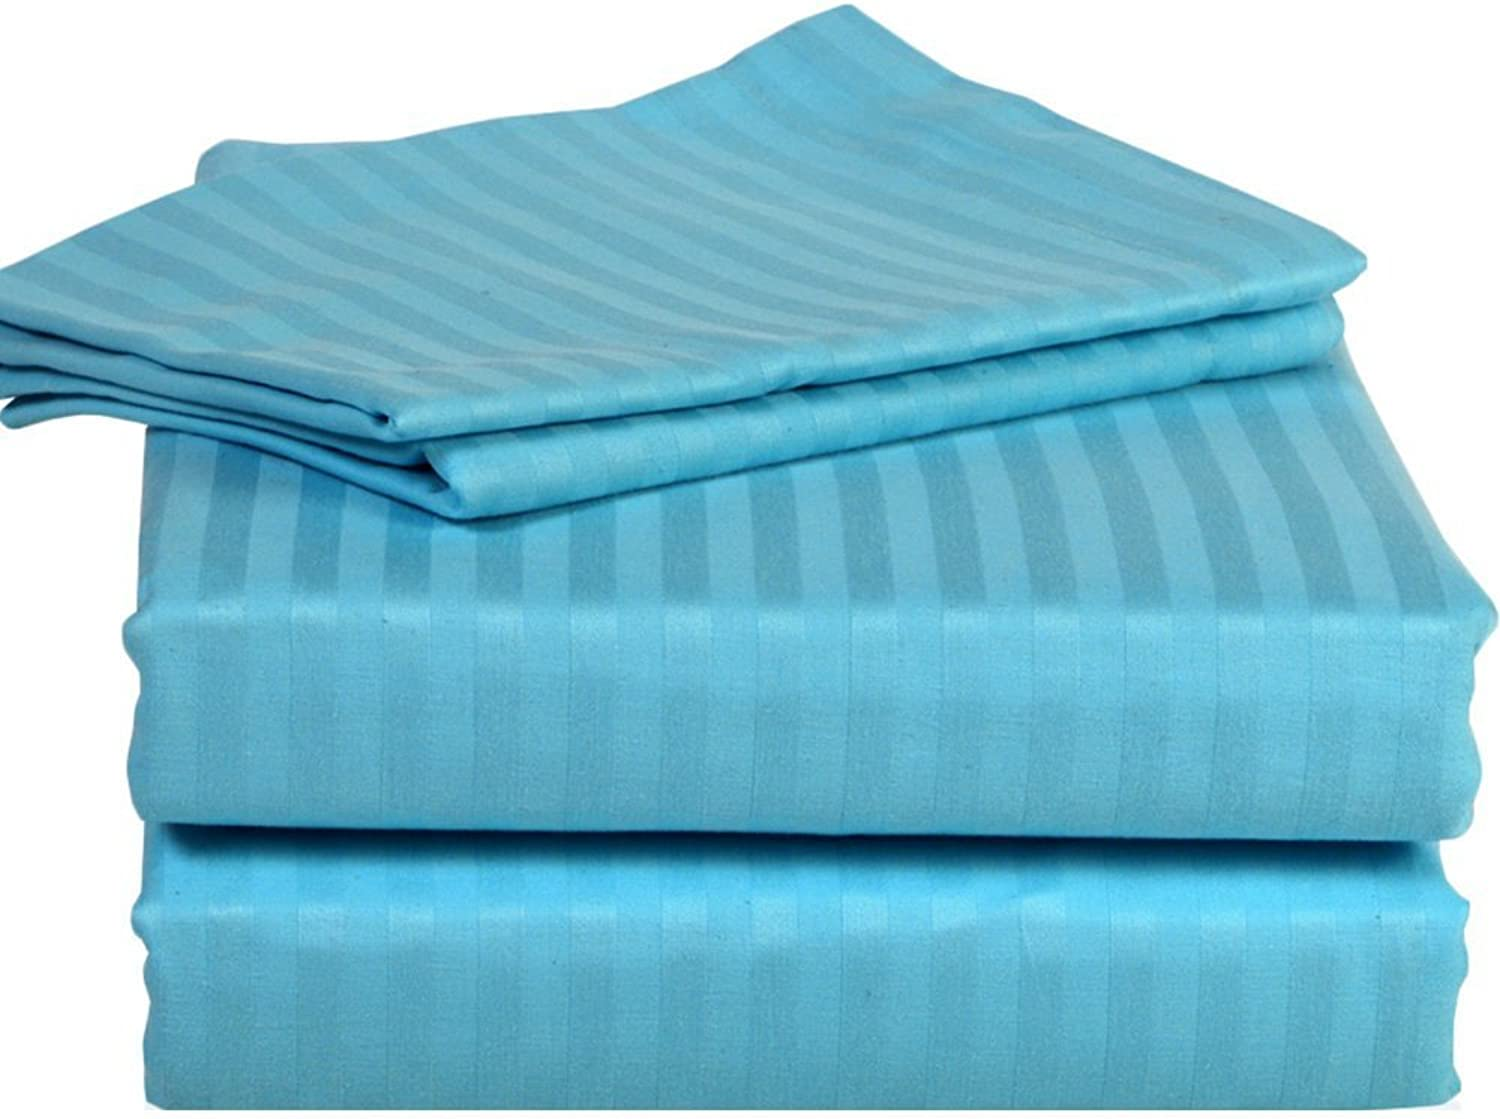 800 Thread Count 6 PieceSheet Set upto 22 inches Deep Pocket 100% Egyptian Cotton Striped Pattern All Sizes & colors ( Olympic Queen , turquoise )